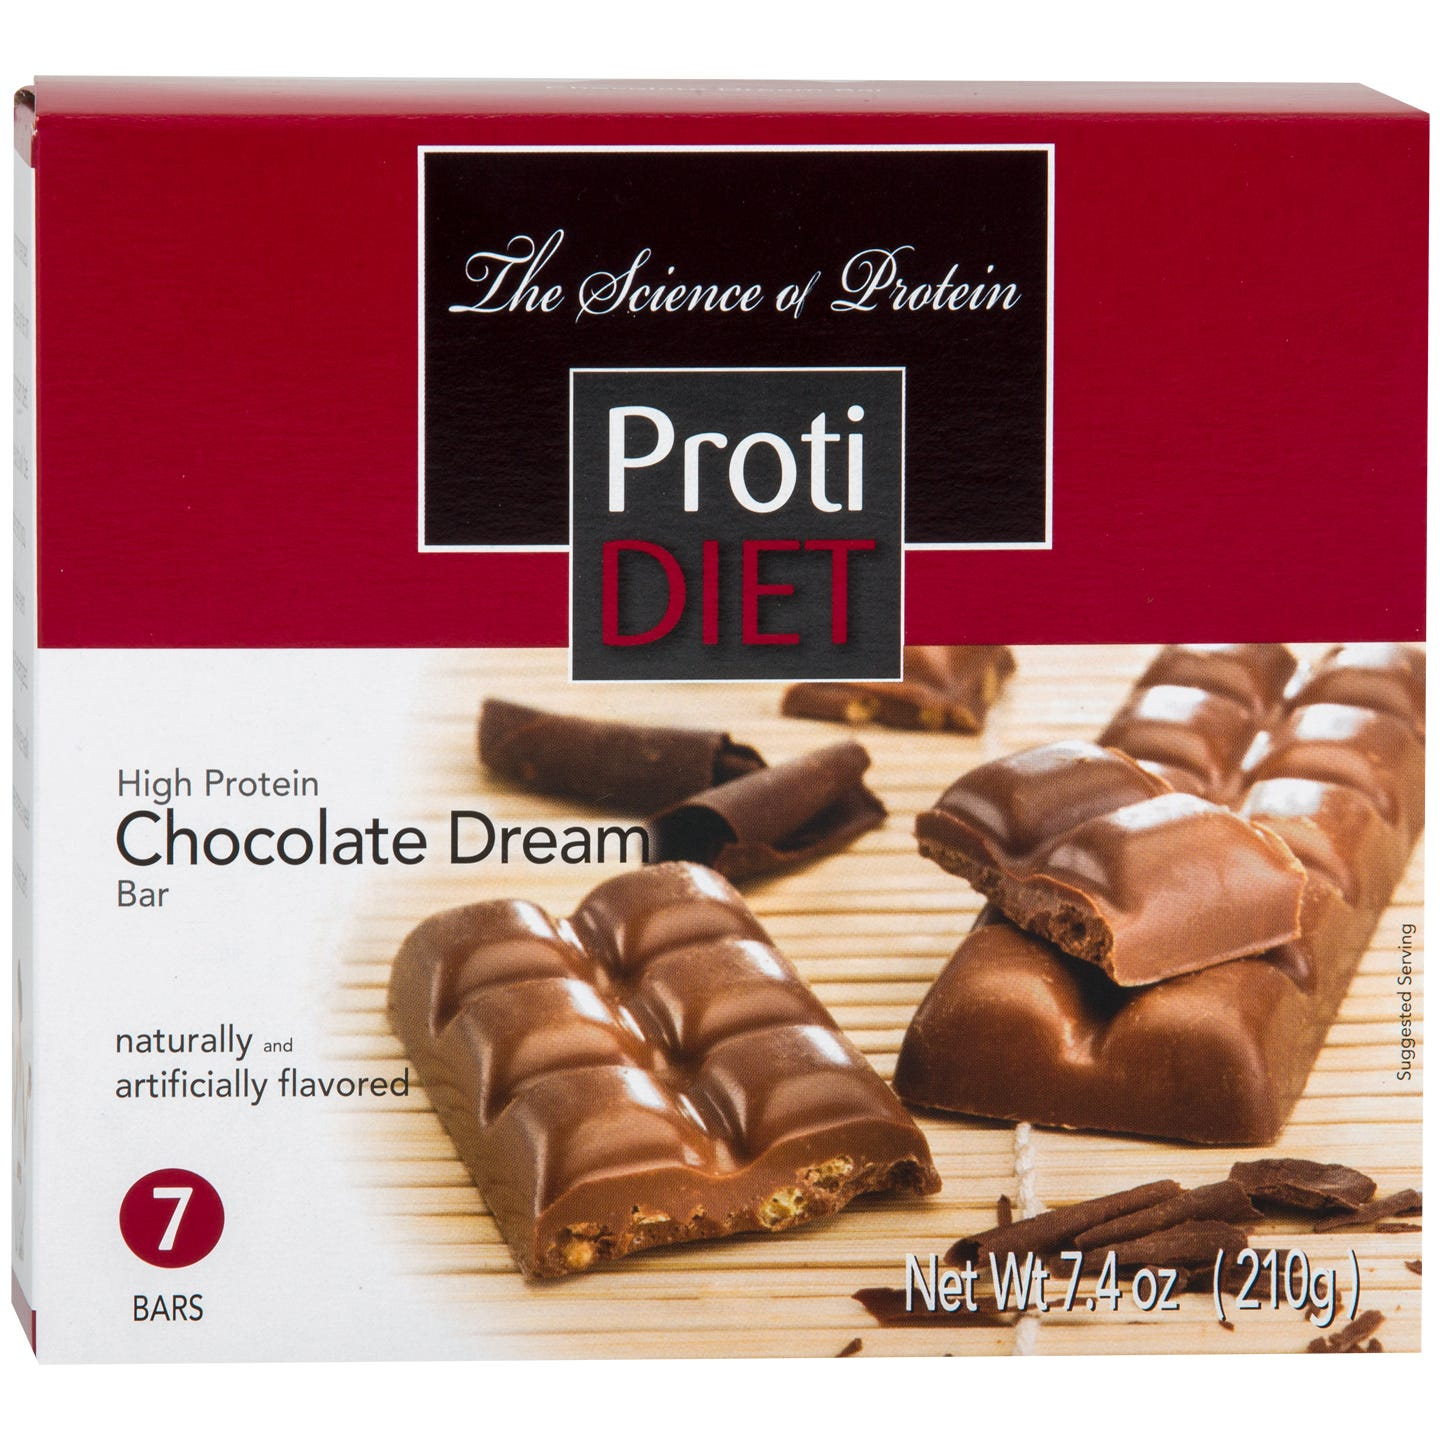 High Protein Sugar Free Chocolate Dream Bar (7 Ct) - ProtiDiet